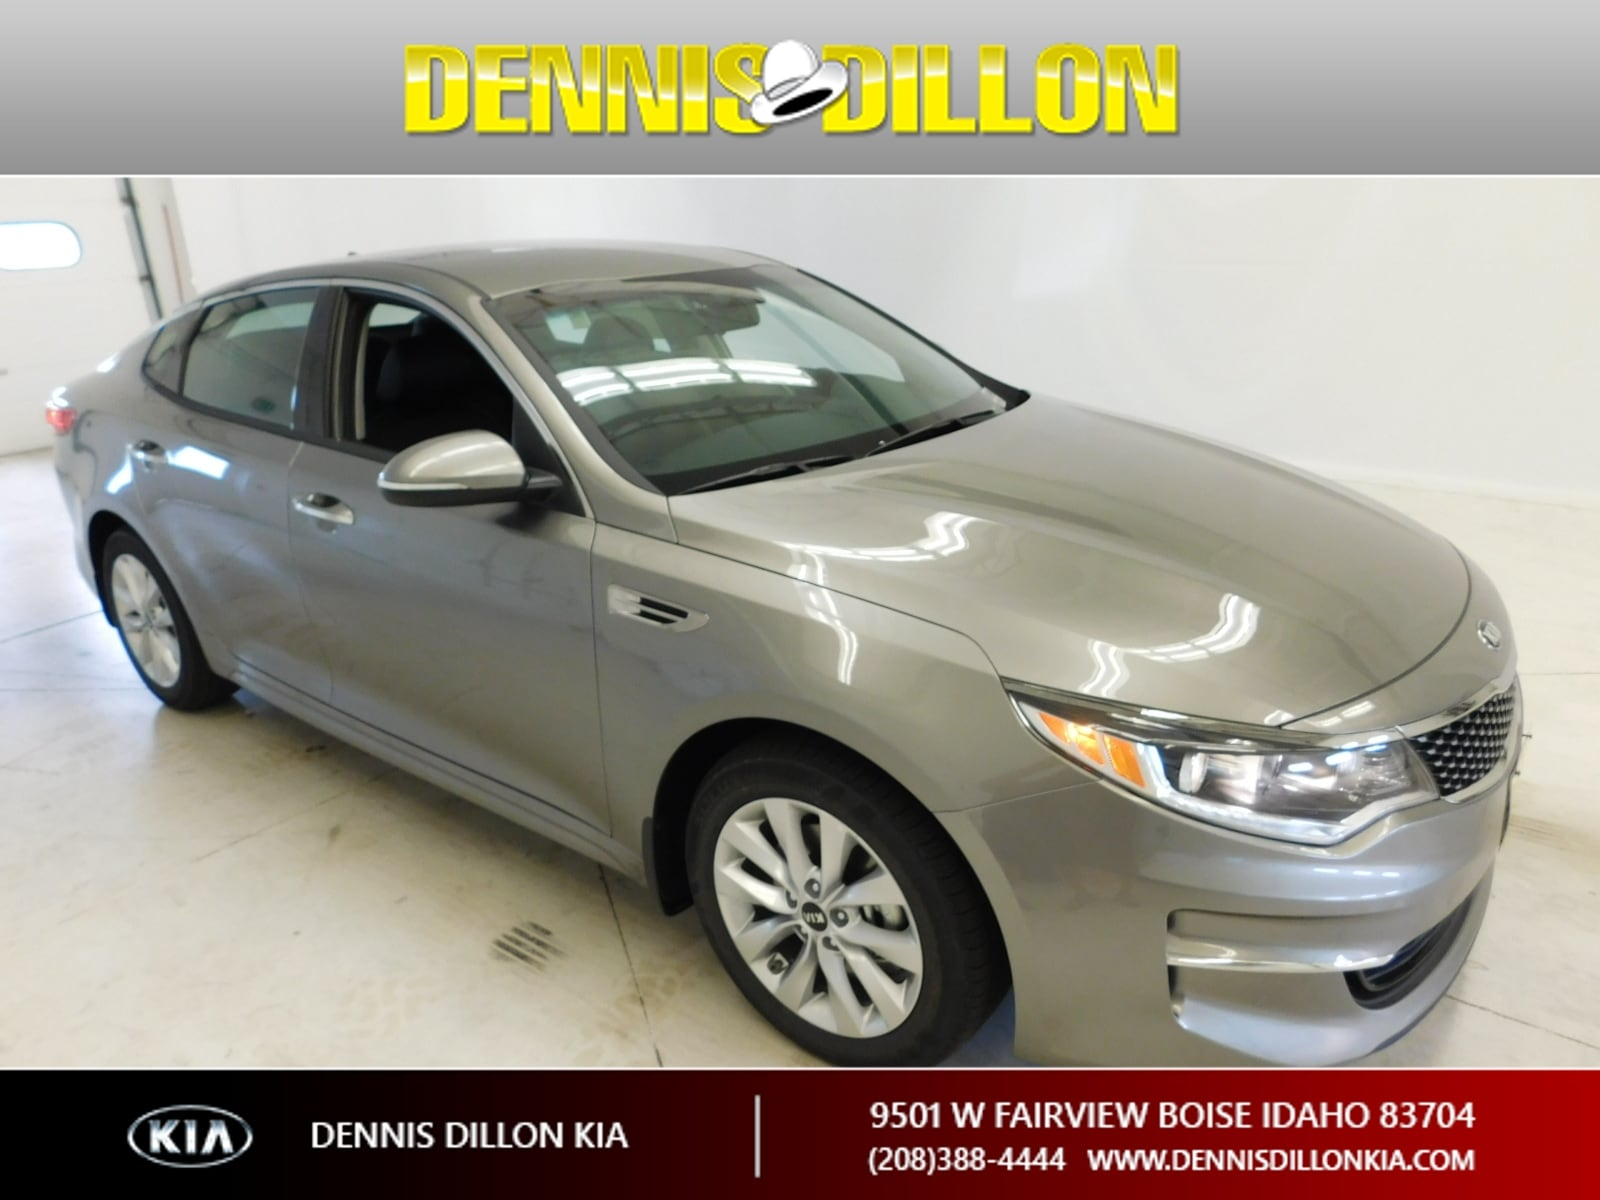 Dennis Dillon Gmc >> Dennis Dillon Kia | New Kia dealership in Boise, ID 83704